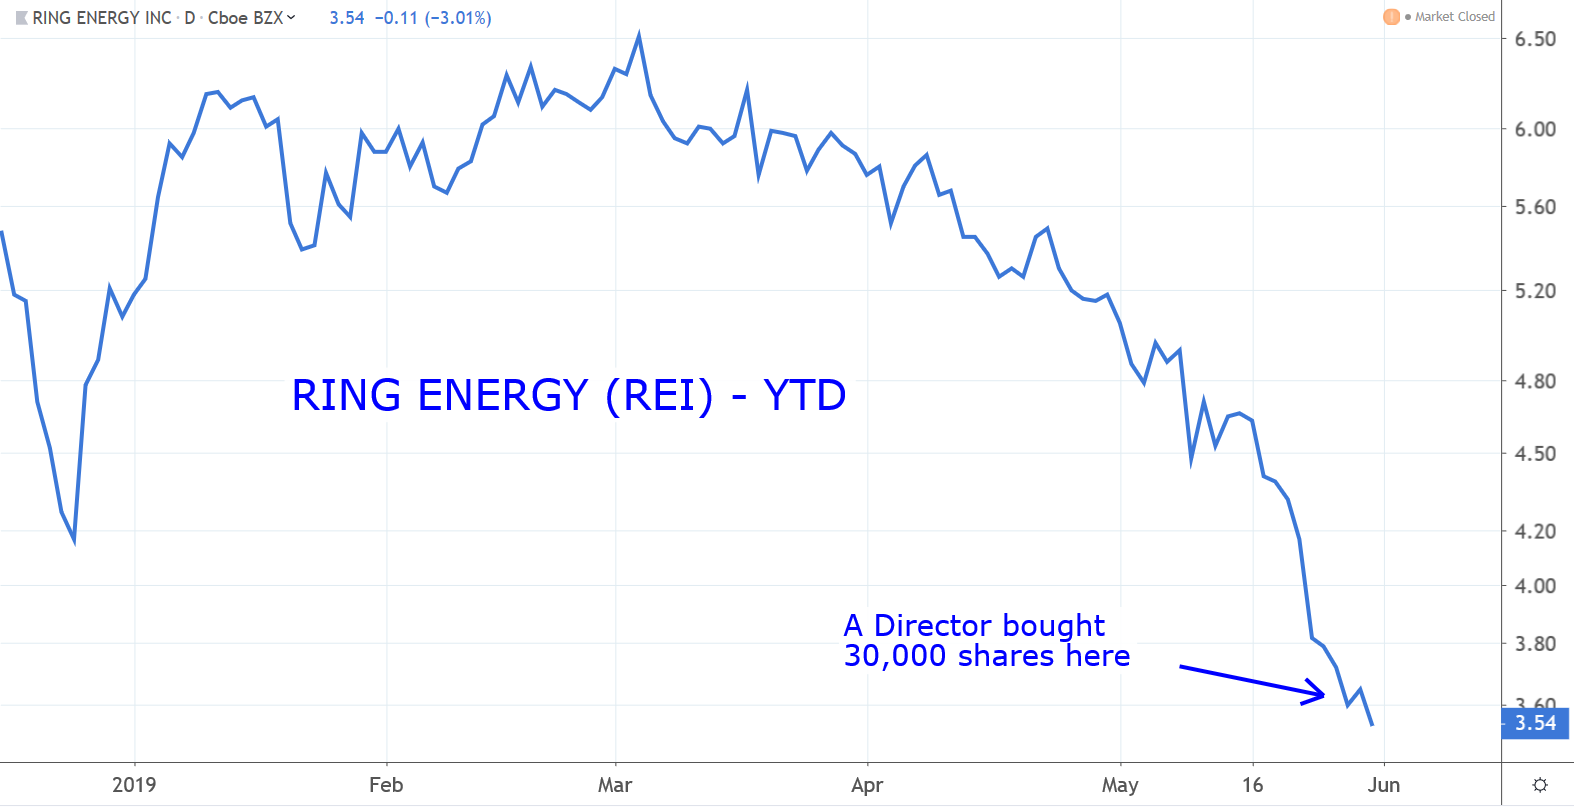 Stocks to Buy: Ring Energy (REI)